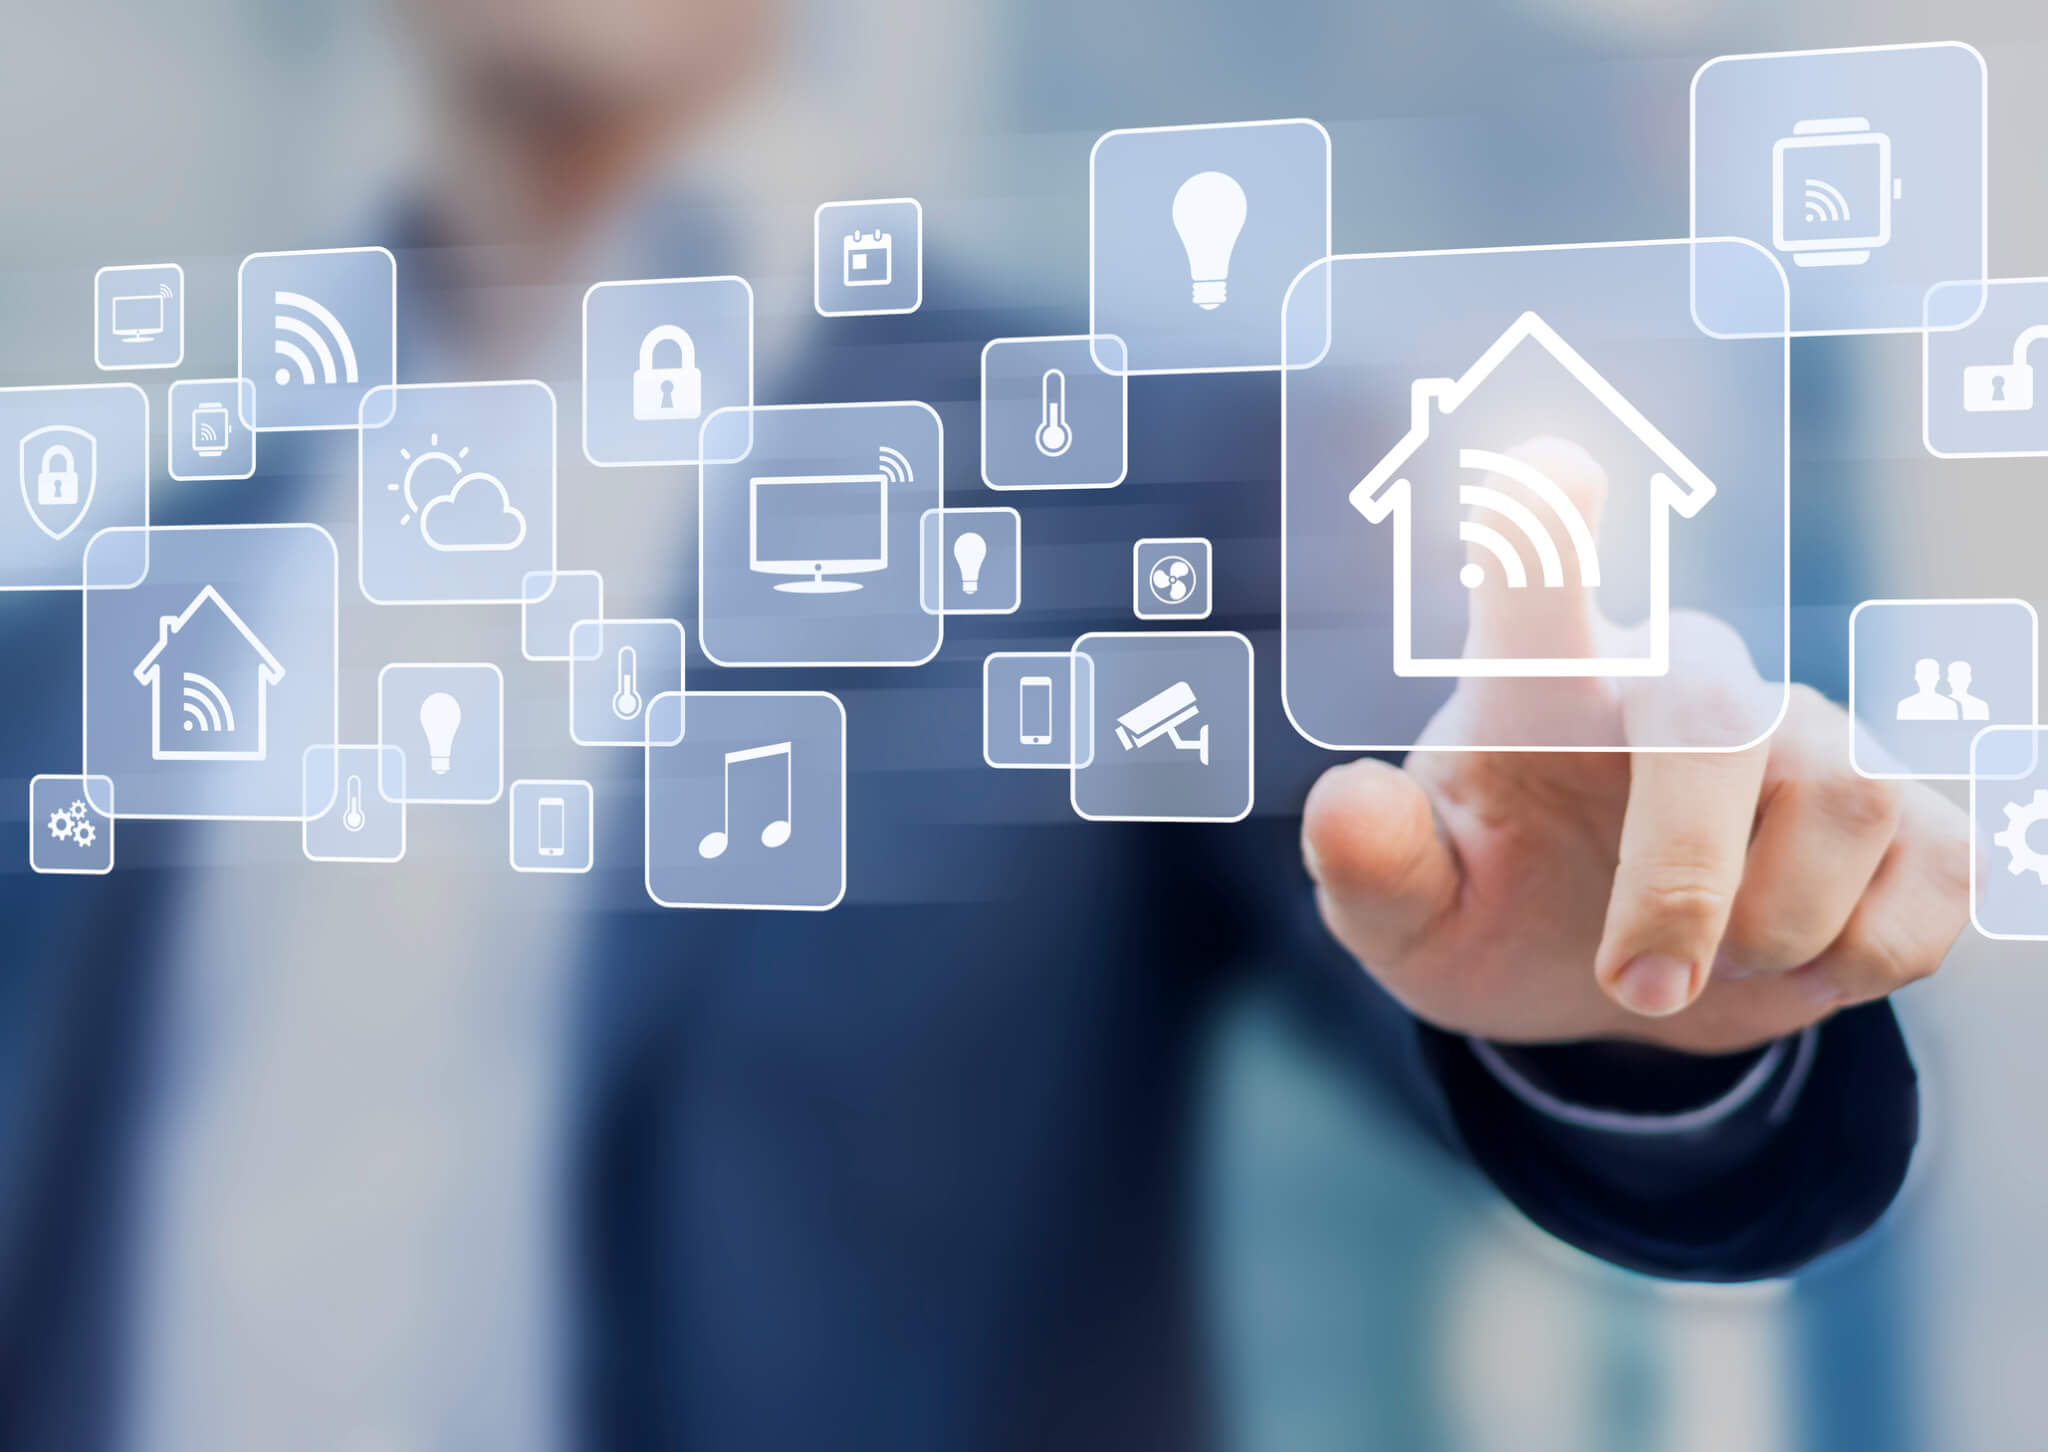 A Thorough Guide to Home Automation and Smart Home Technology